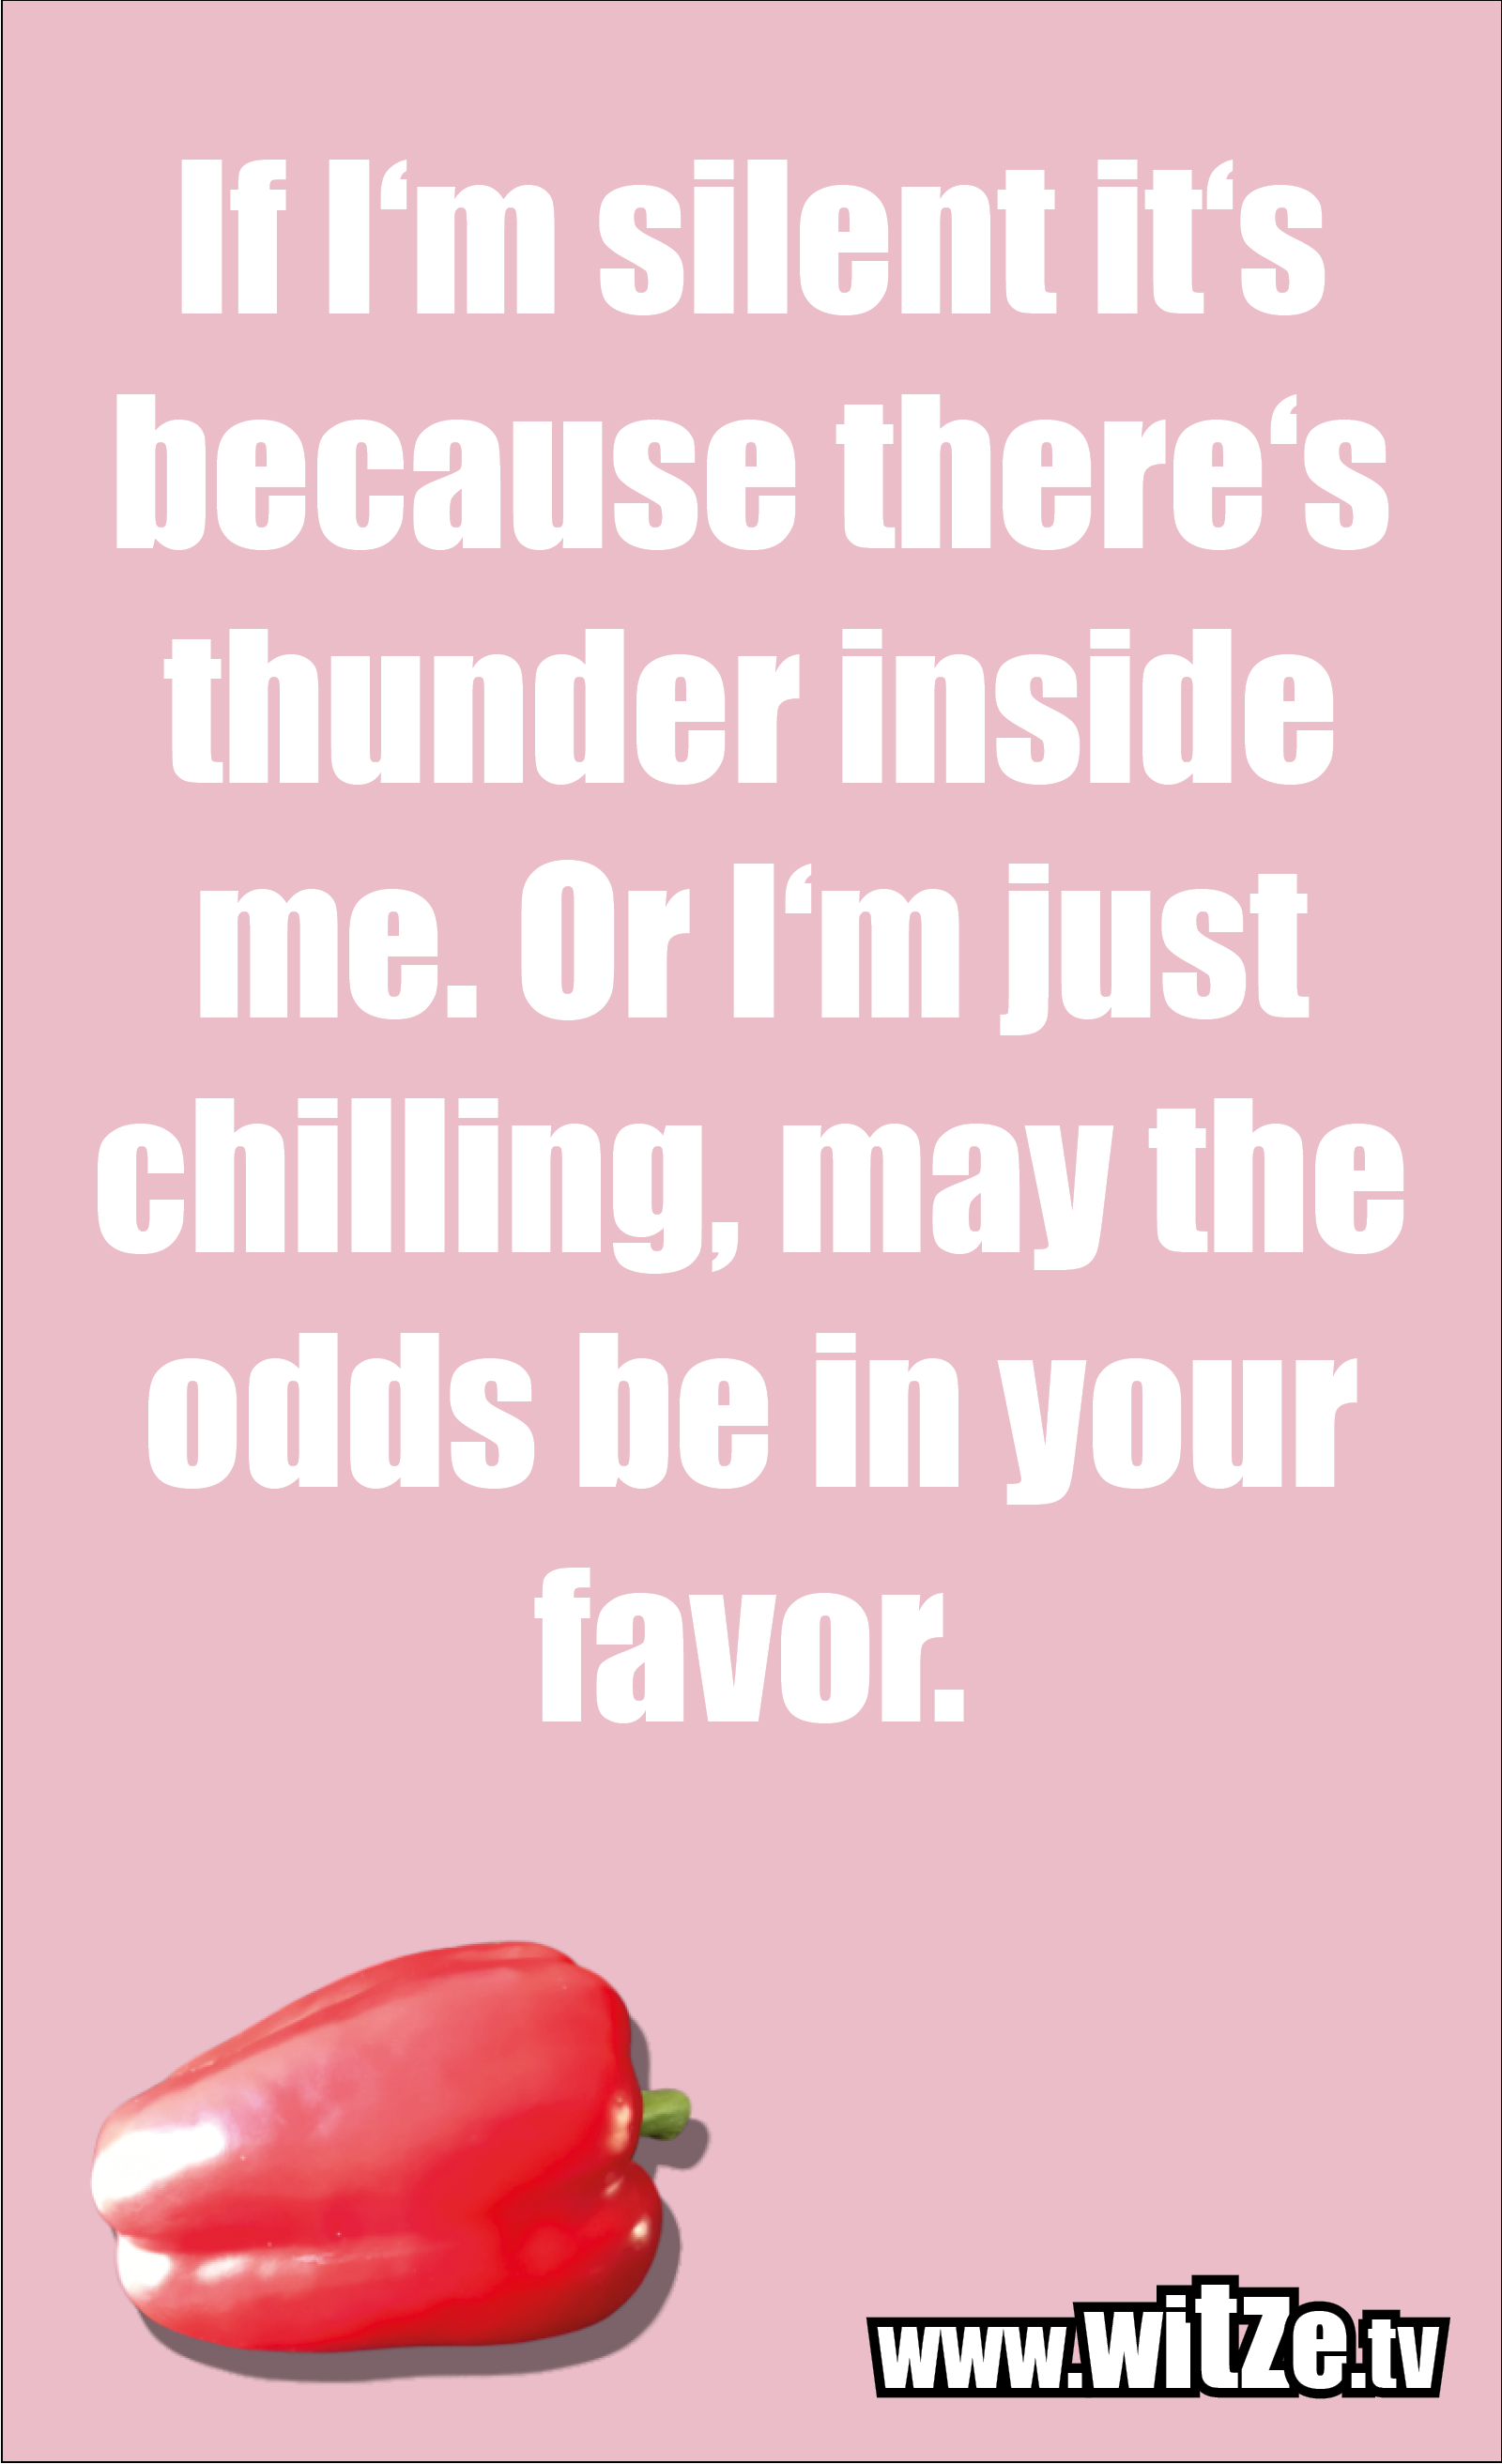 Funny sayings… If I'm silent it's because there's thunder inside me. Or I'm just chilling, may the odds be in your favor.